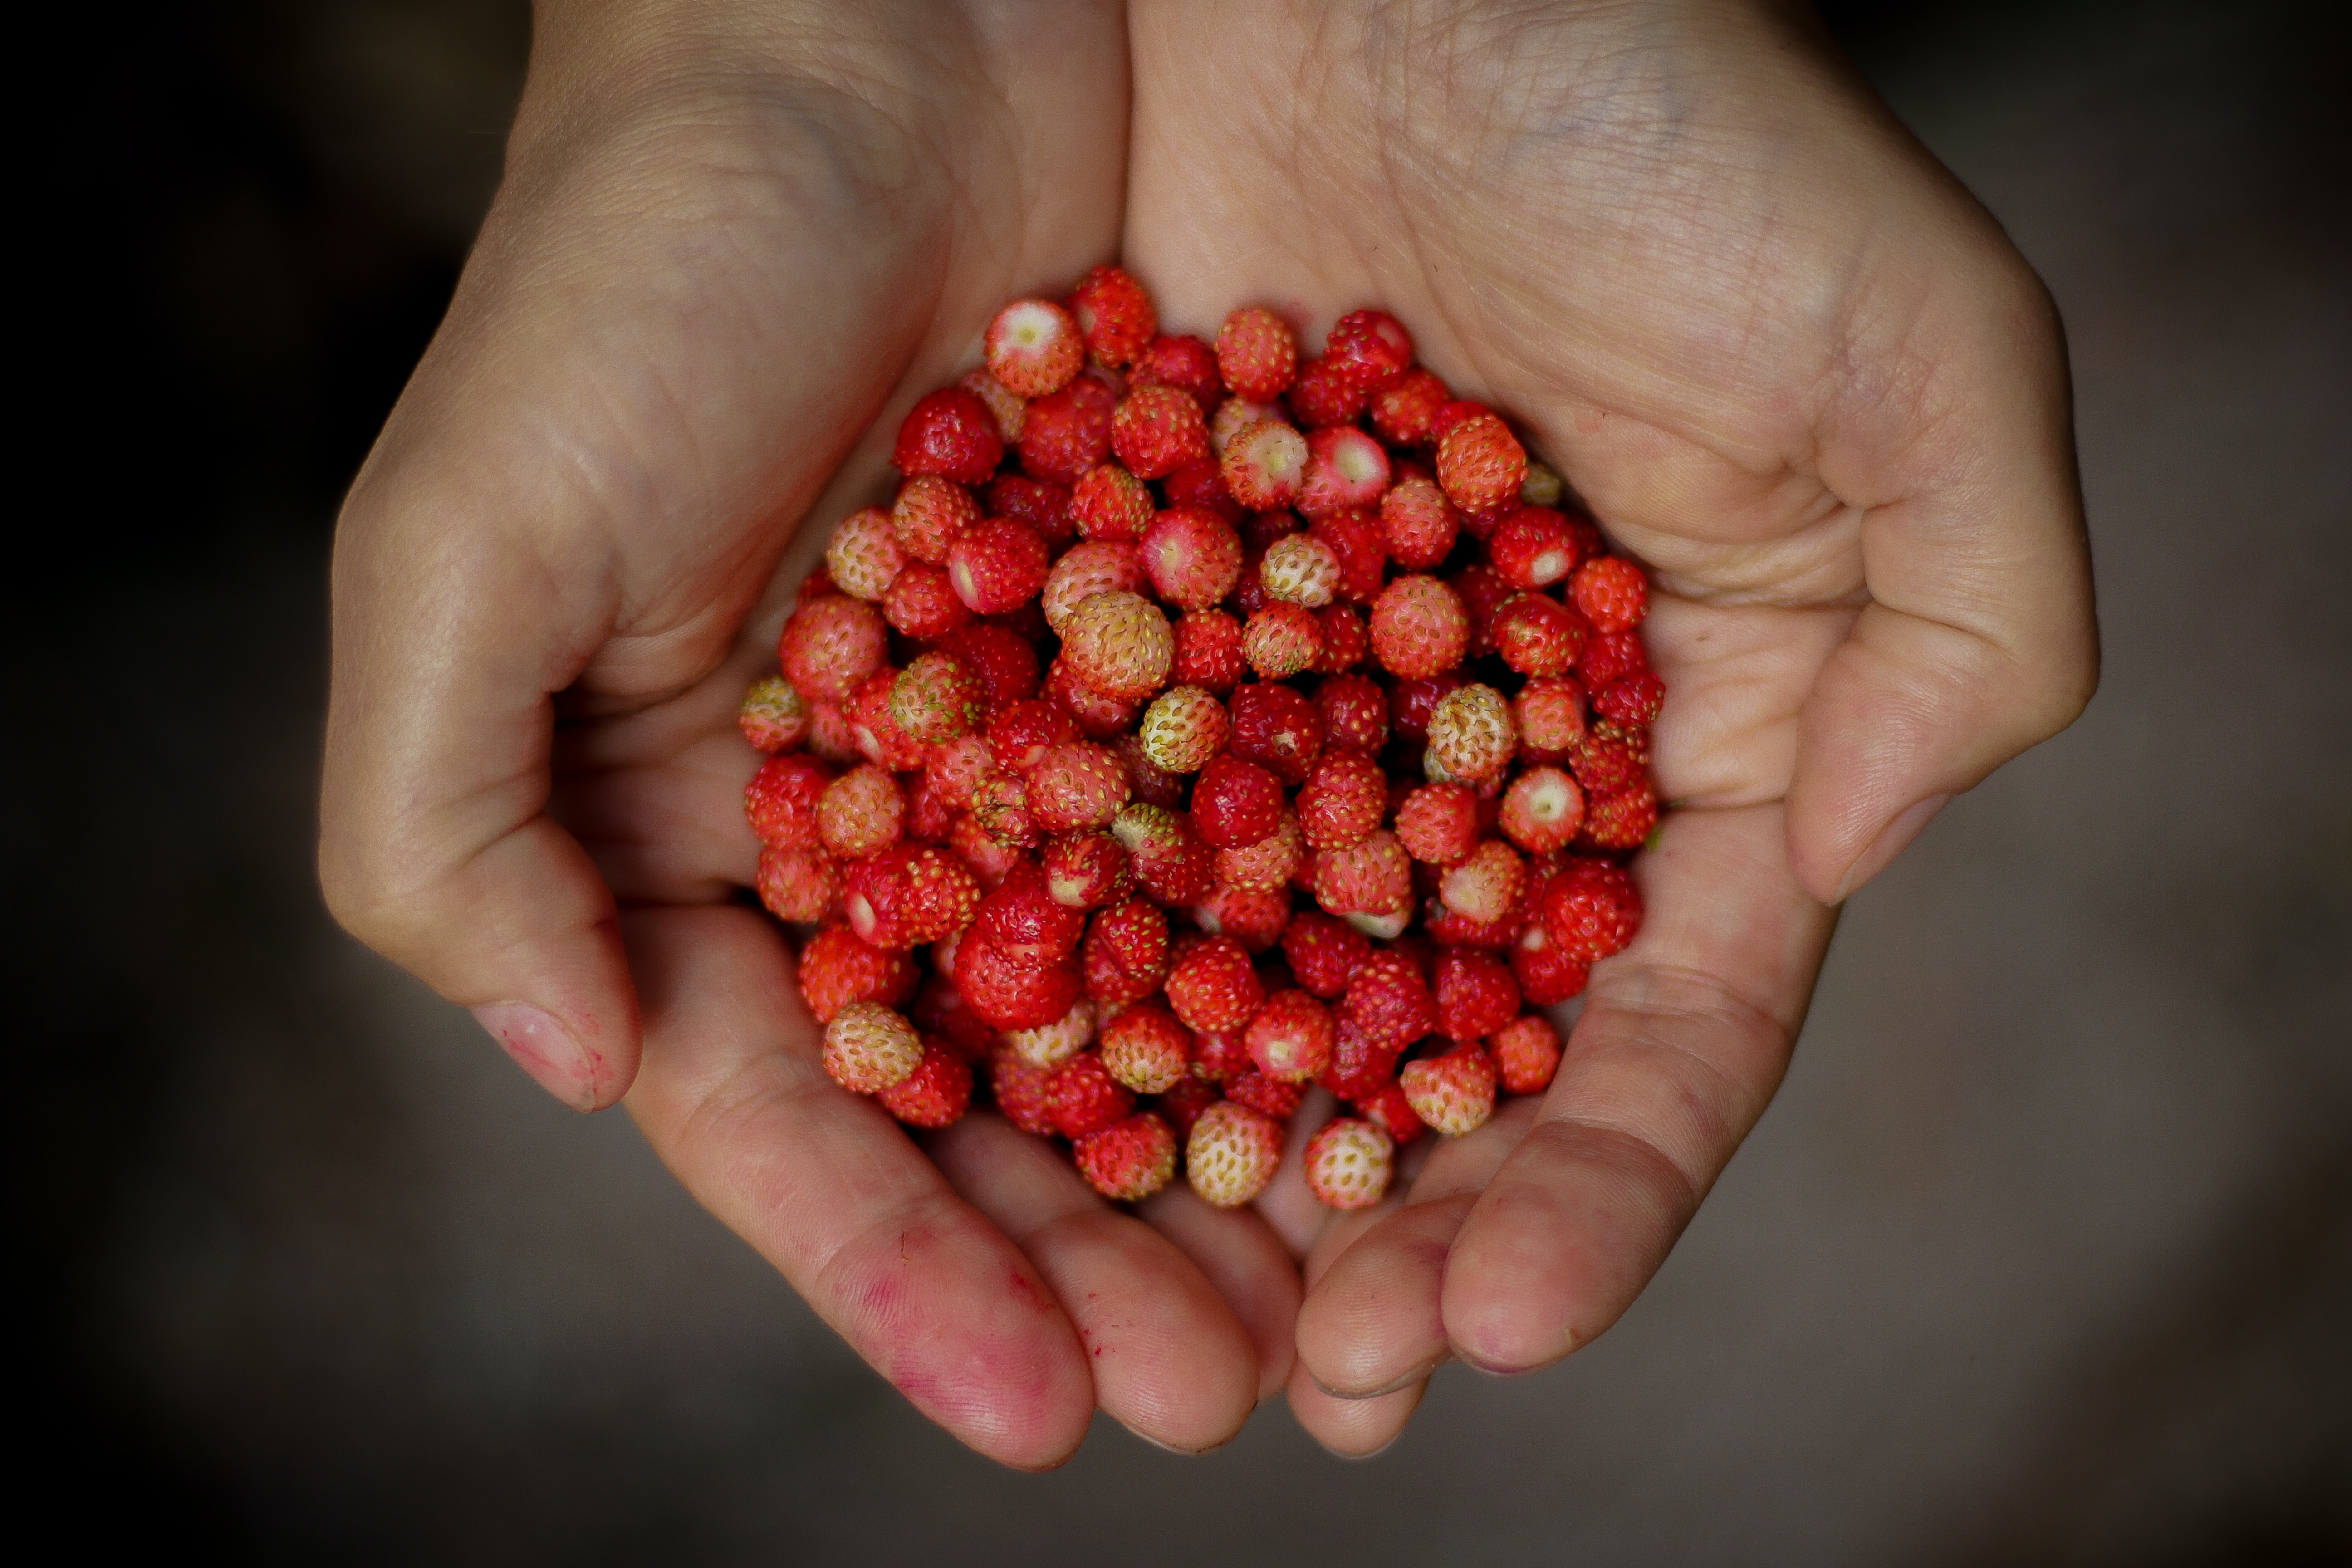 Hands outstretched holding a gathered bunch of red wild strawberries